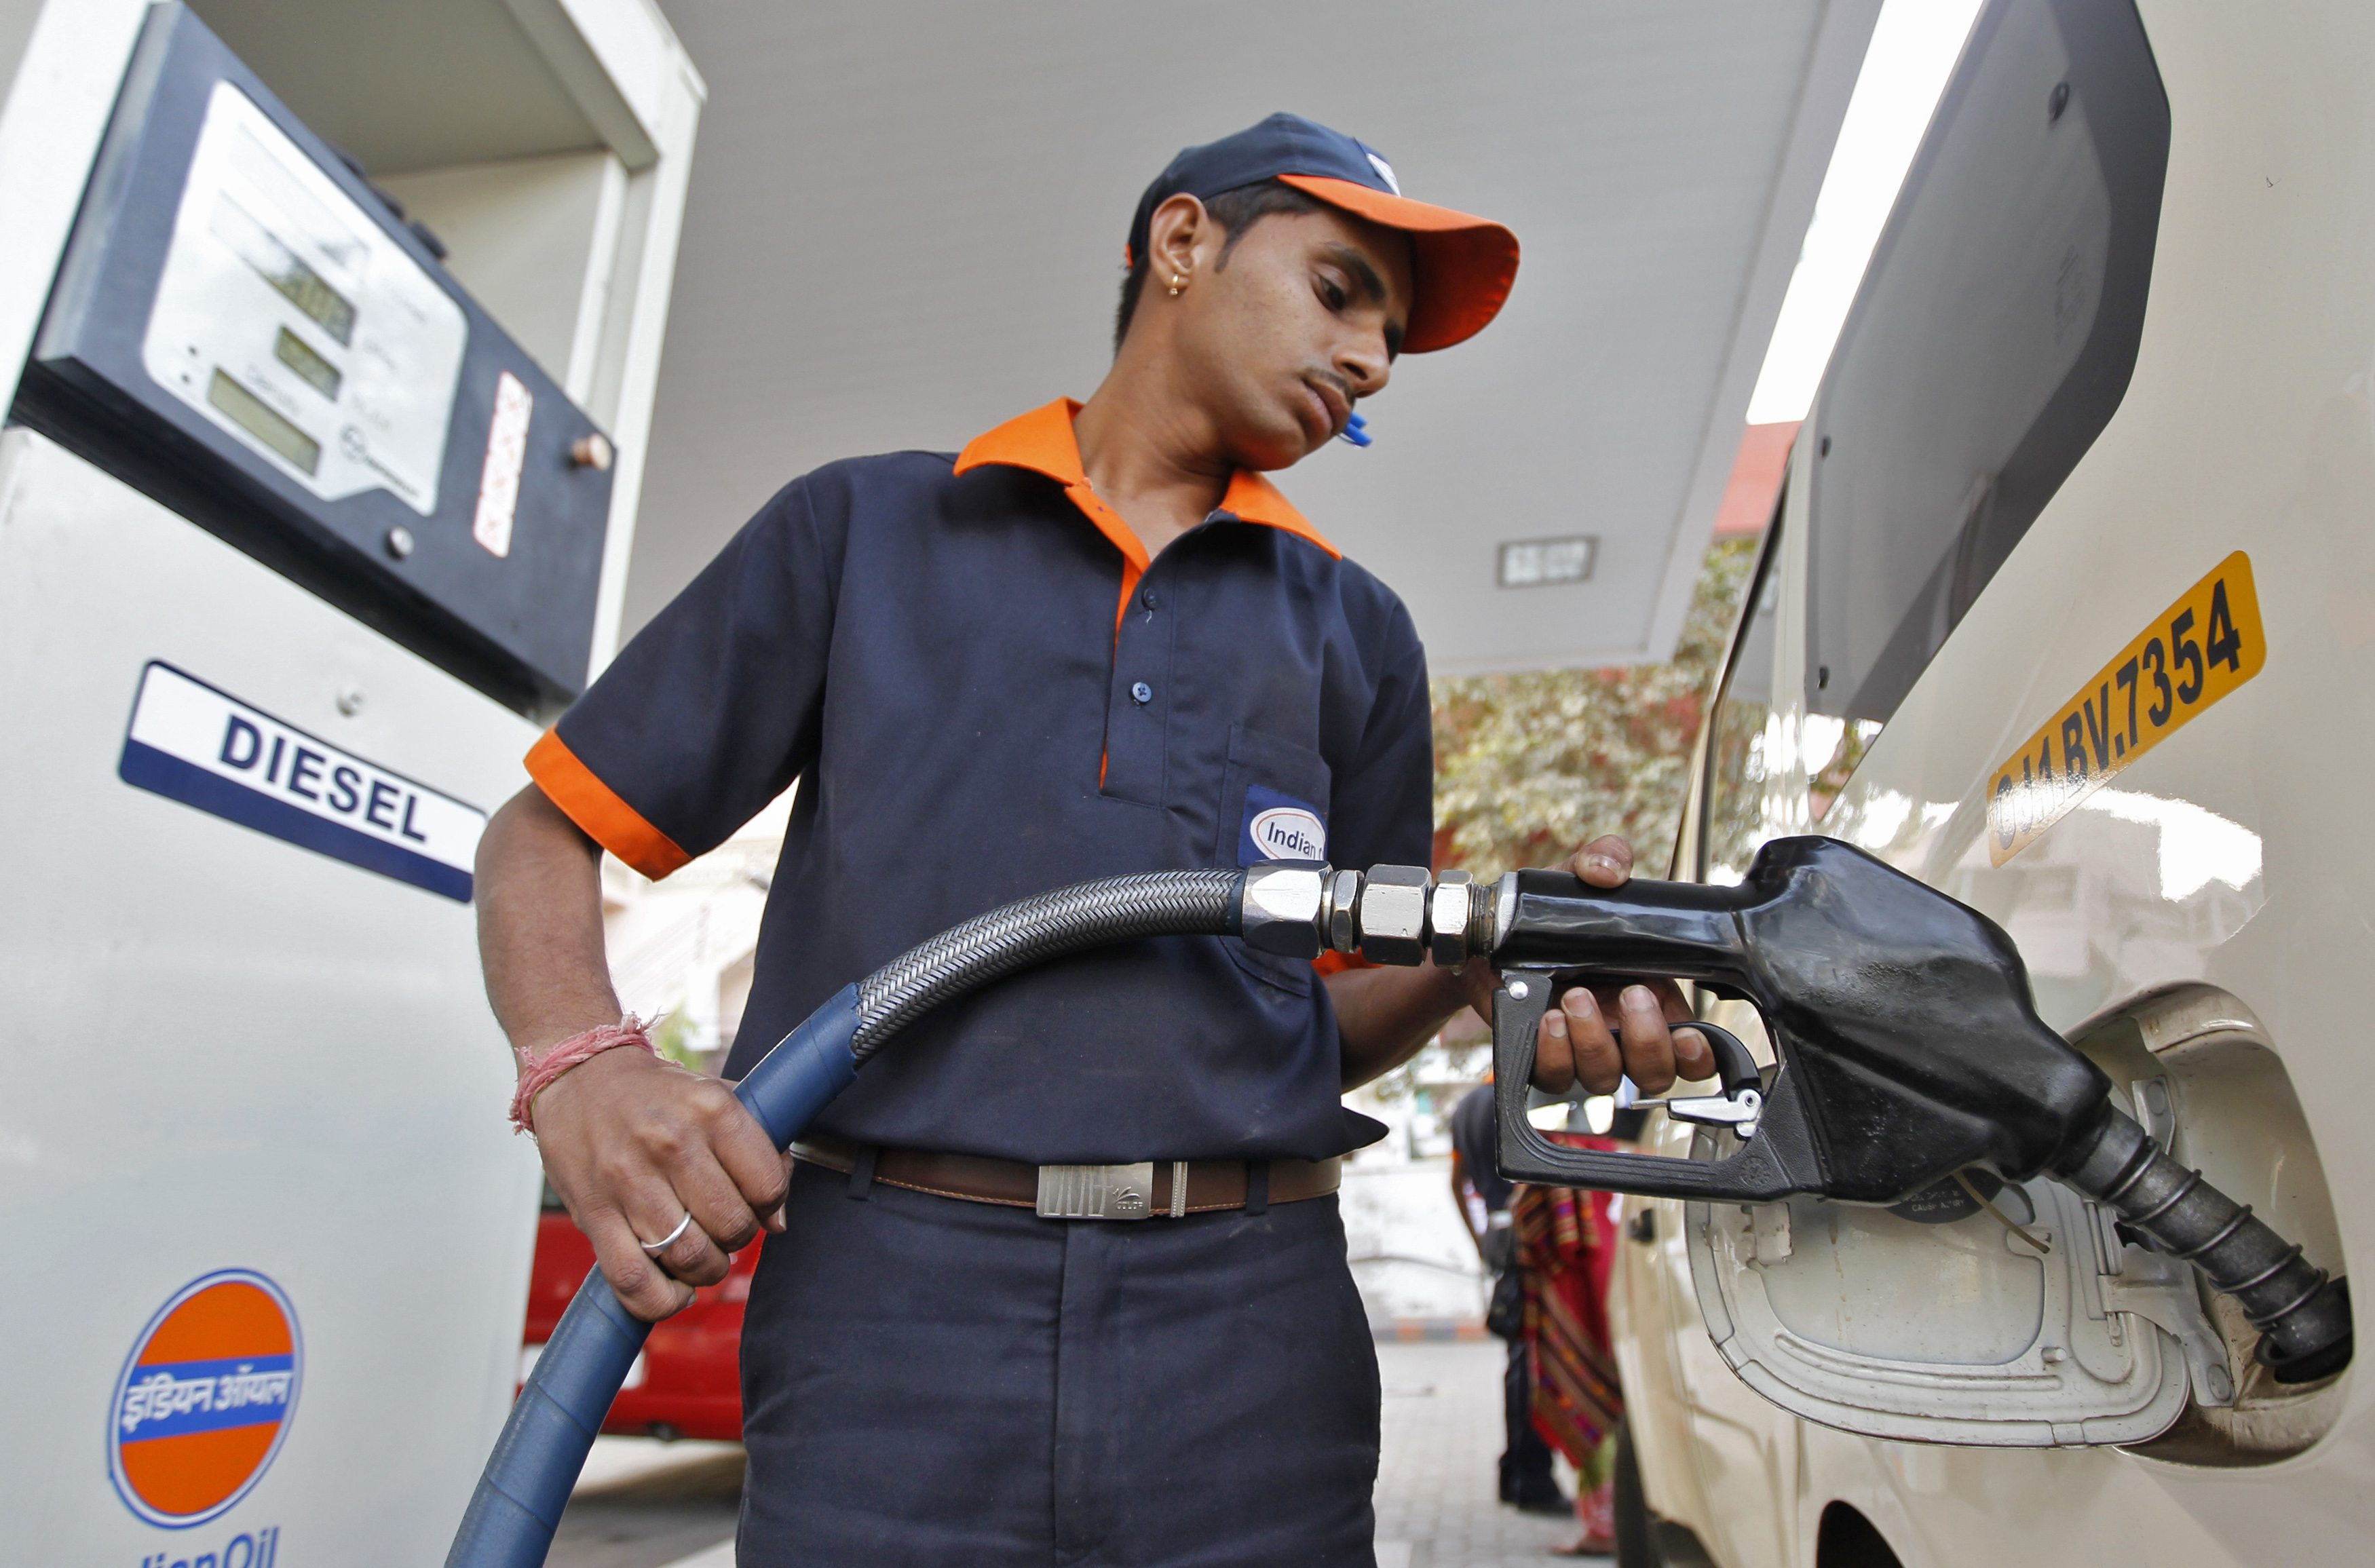 petrol, Diesel, India, Arun Jaitley, BJP, price hike, economy, Indian economy